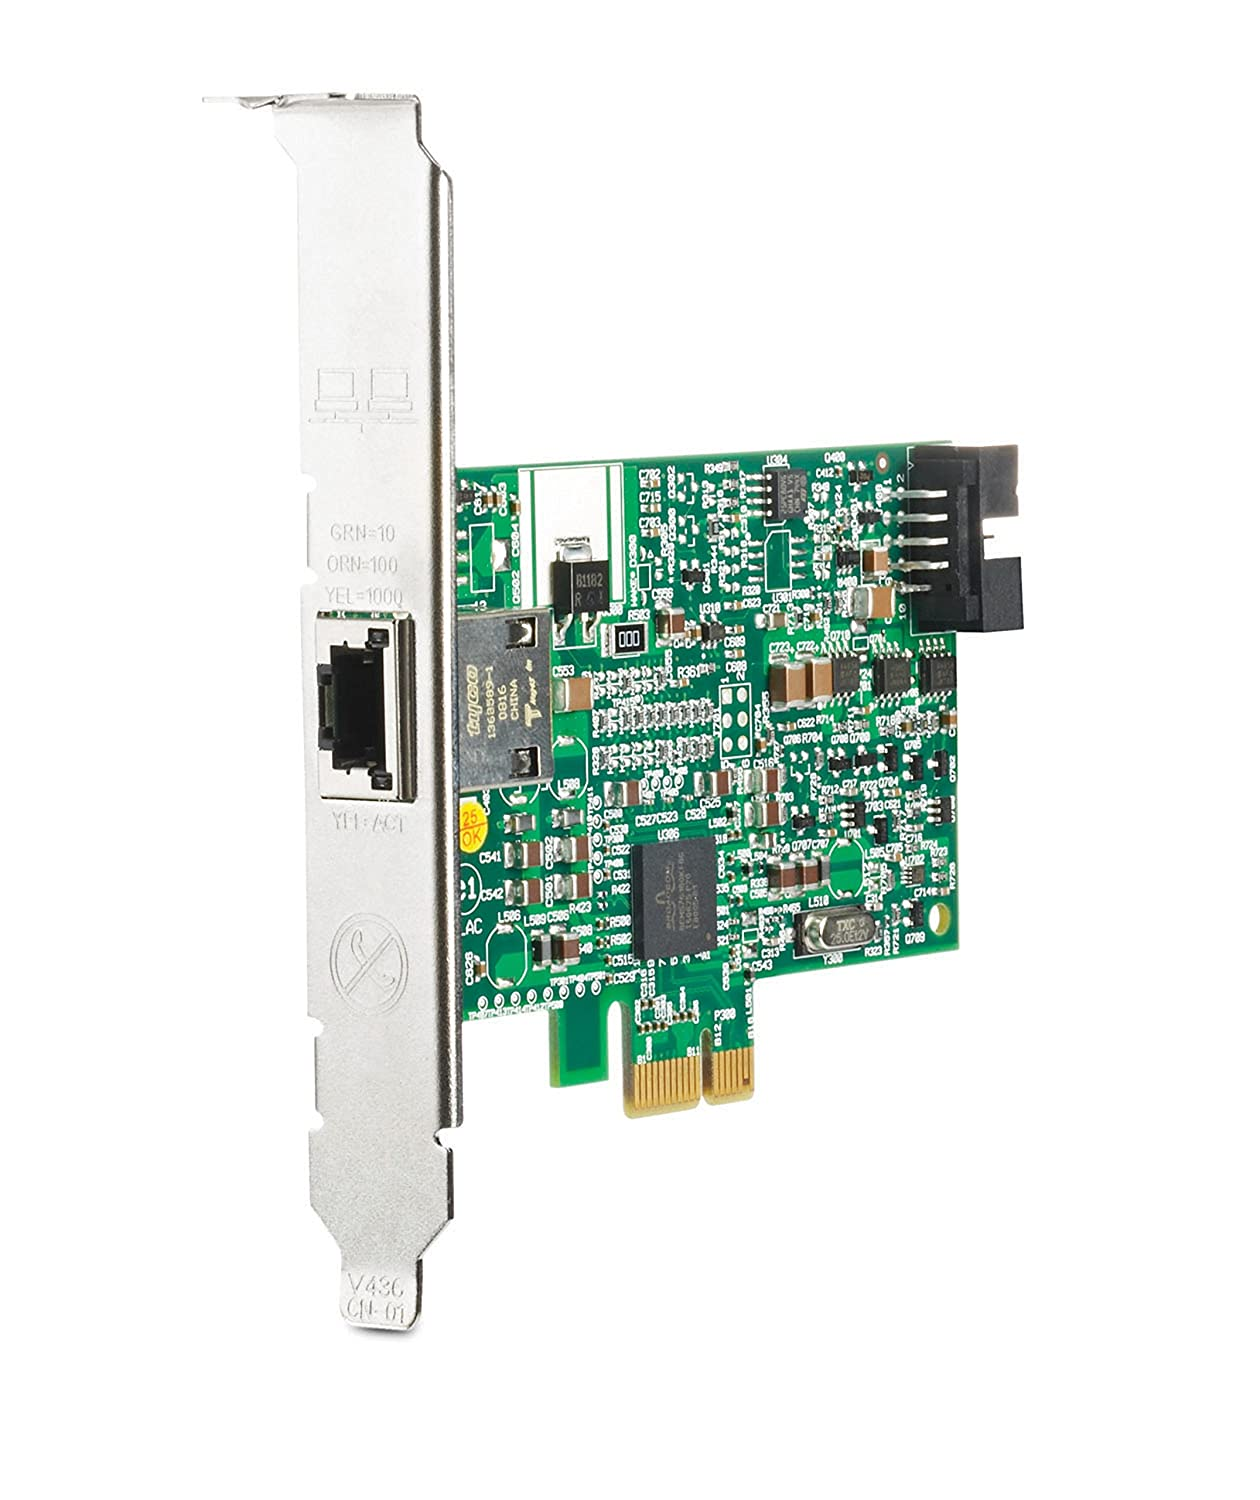 Amazon.com: Broadcom Netxtreme Gigabit Ethernet + Pcie ...